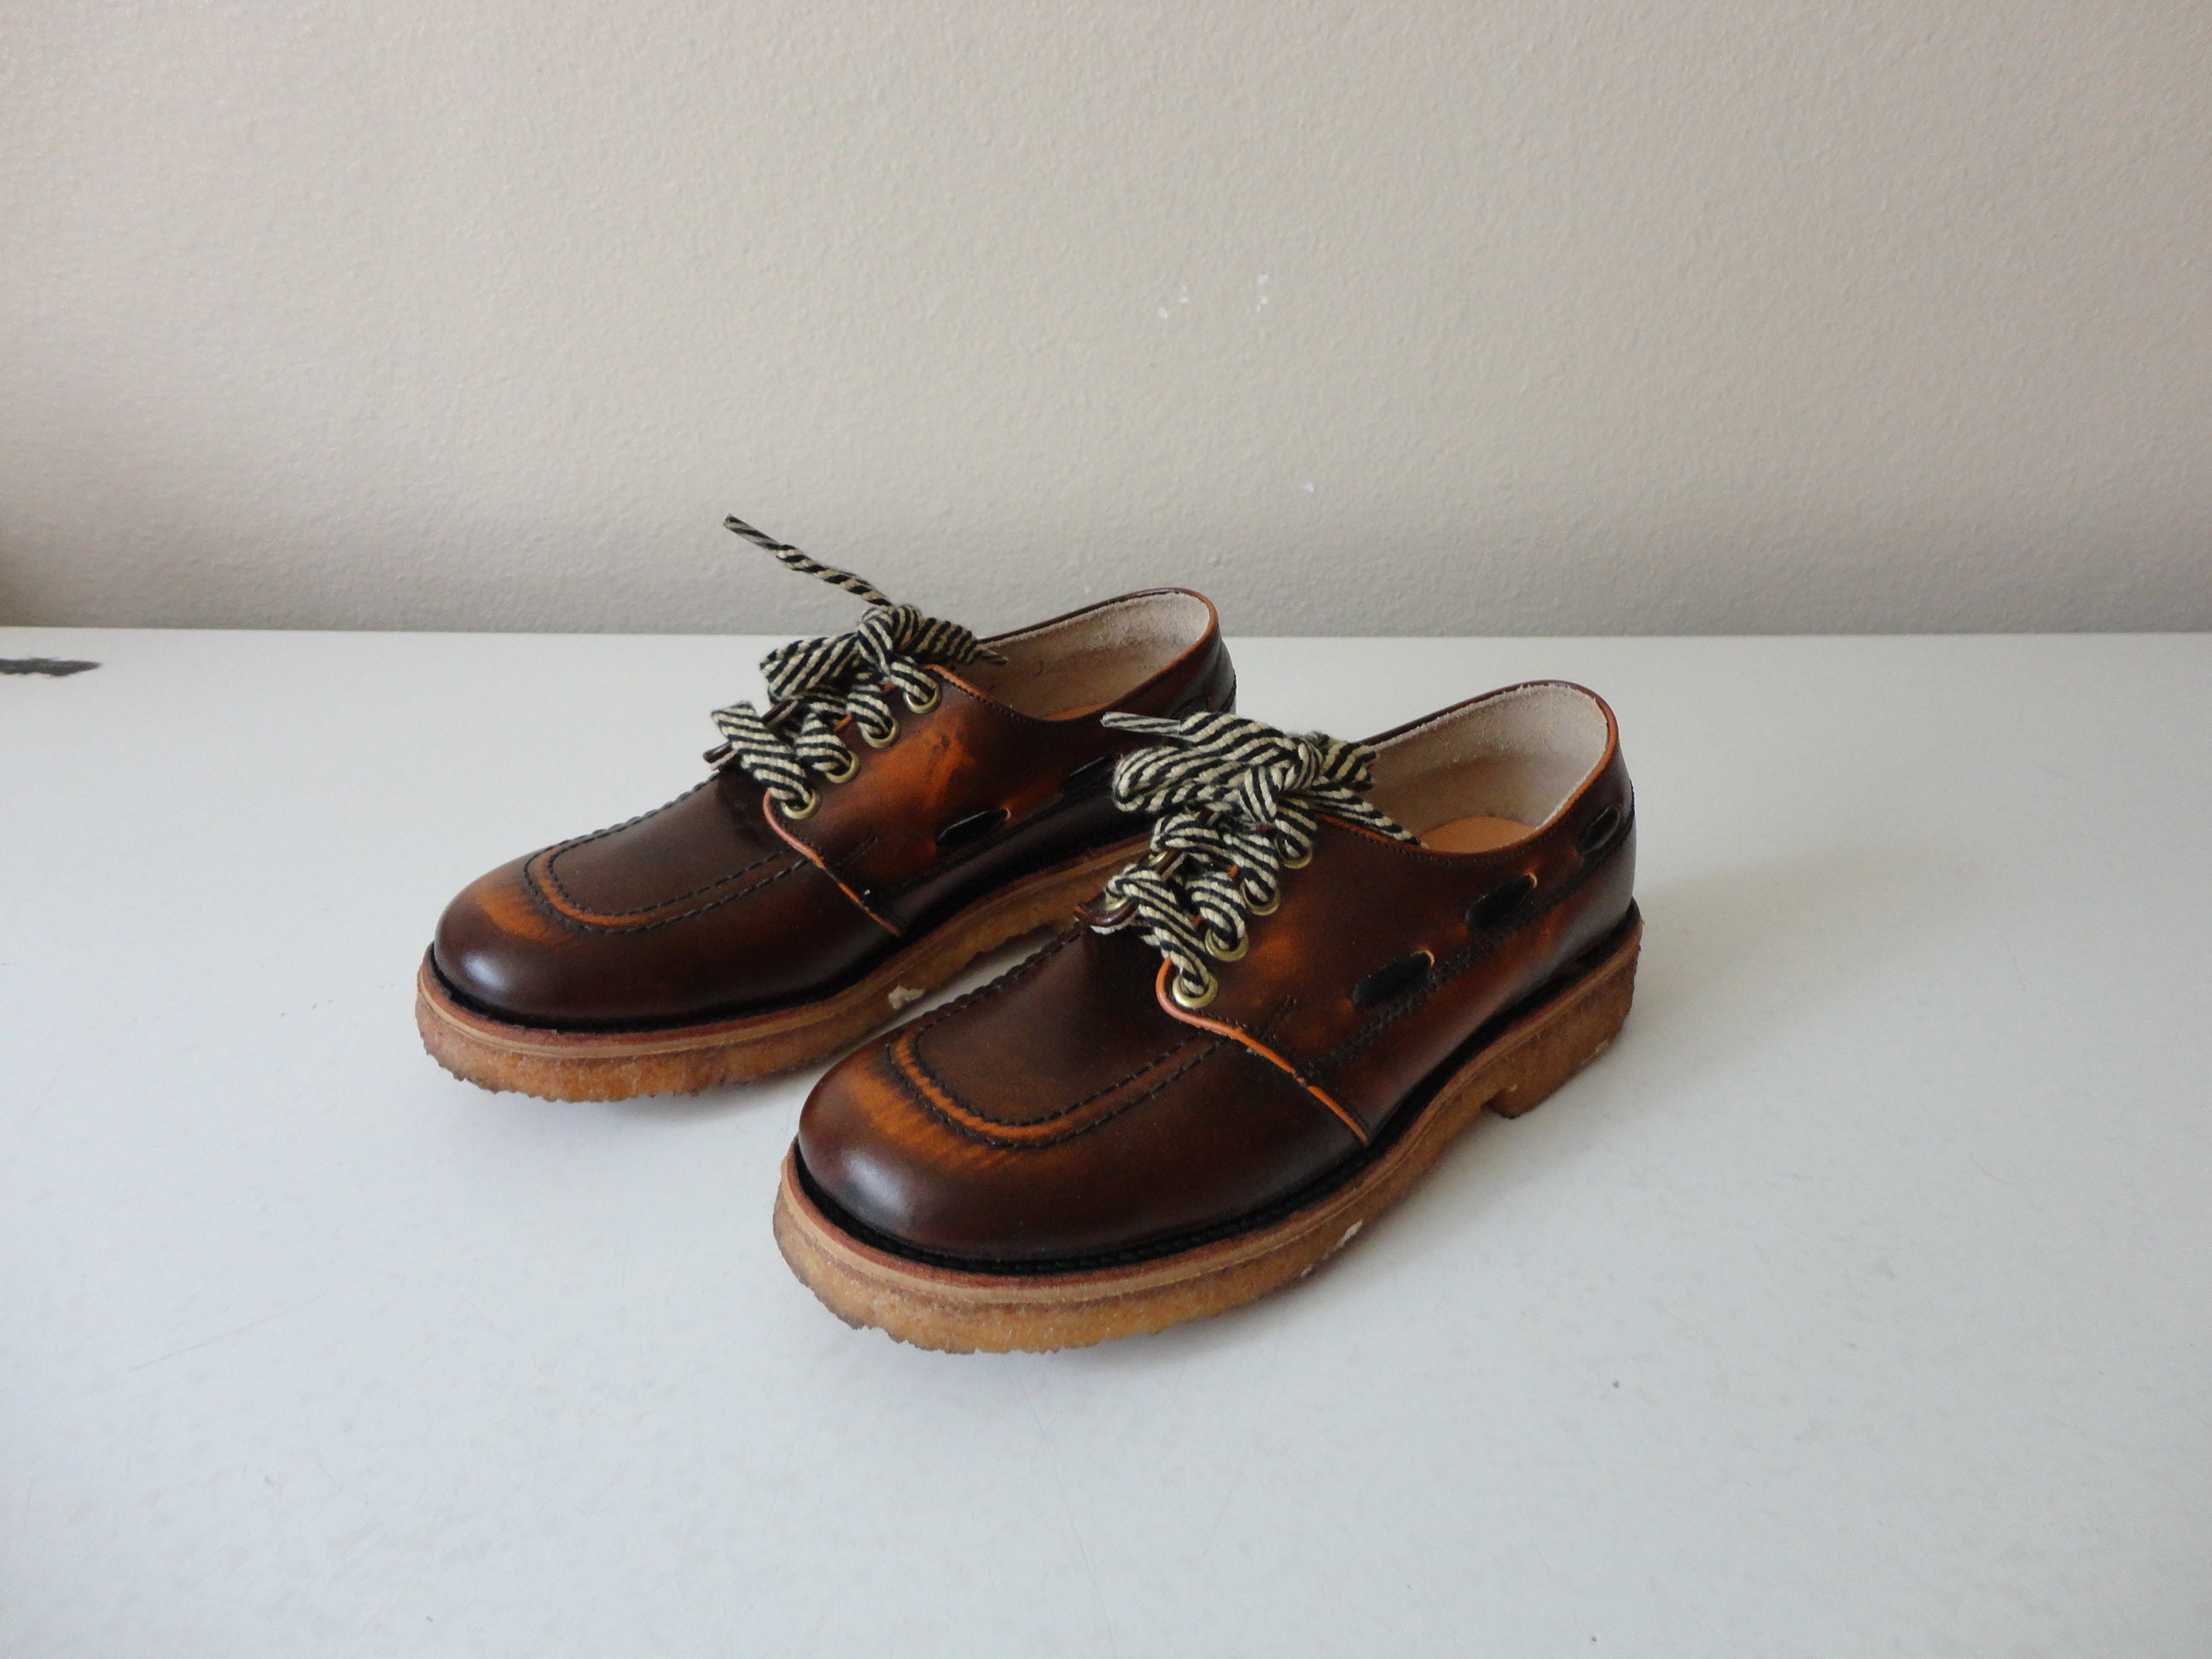 Vintage 1950s brown leather shoes genuine oxford sneakers formal lace tie unisex kids/' boys childrens toddler youth 11.5